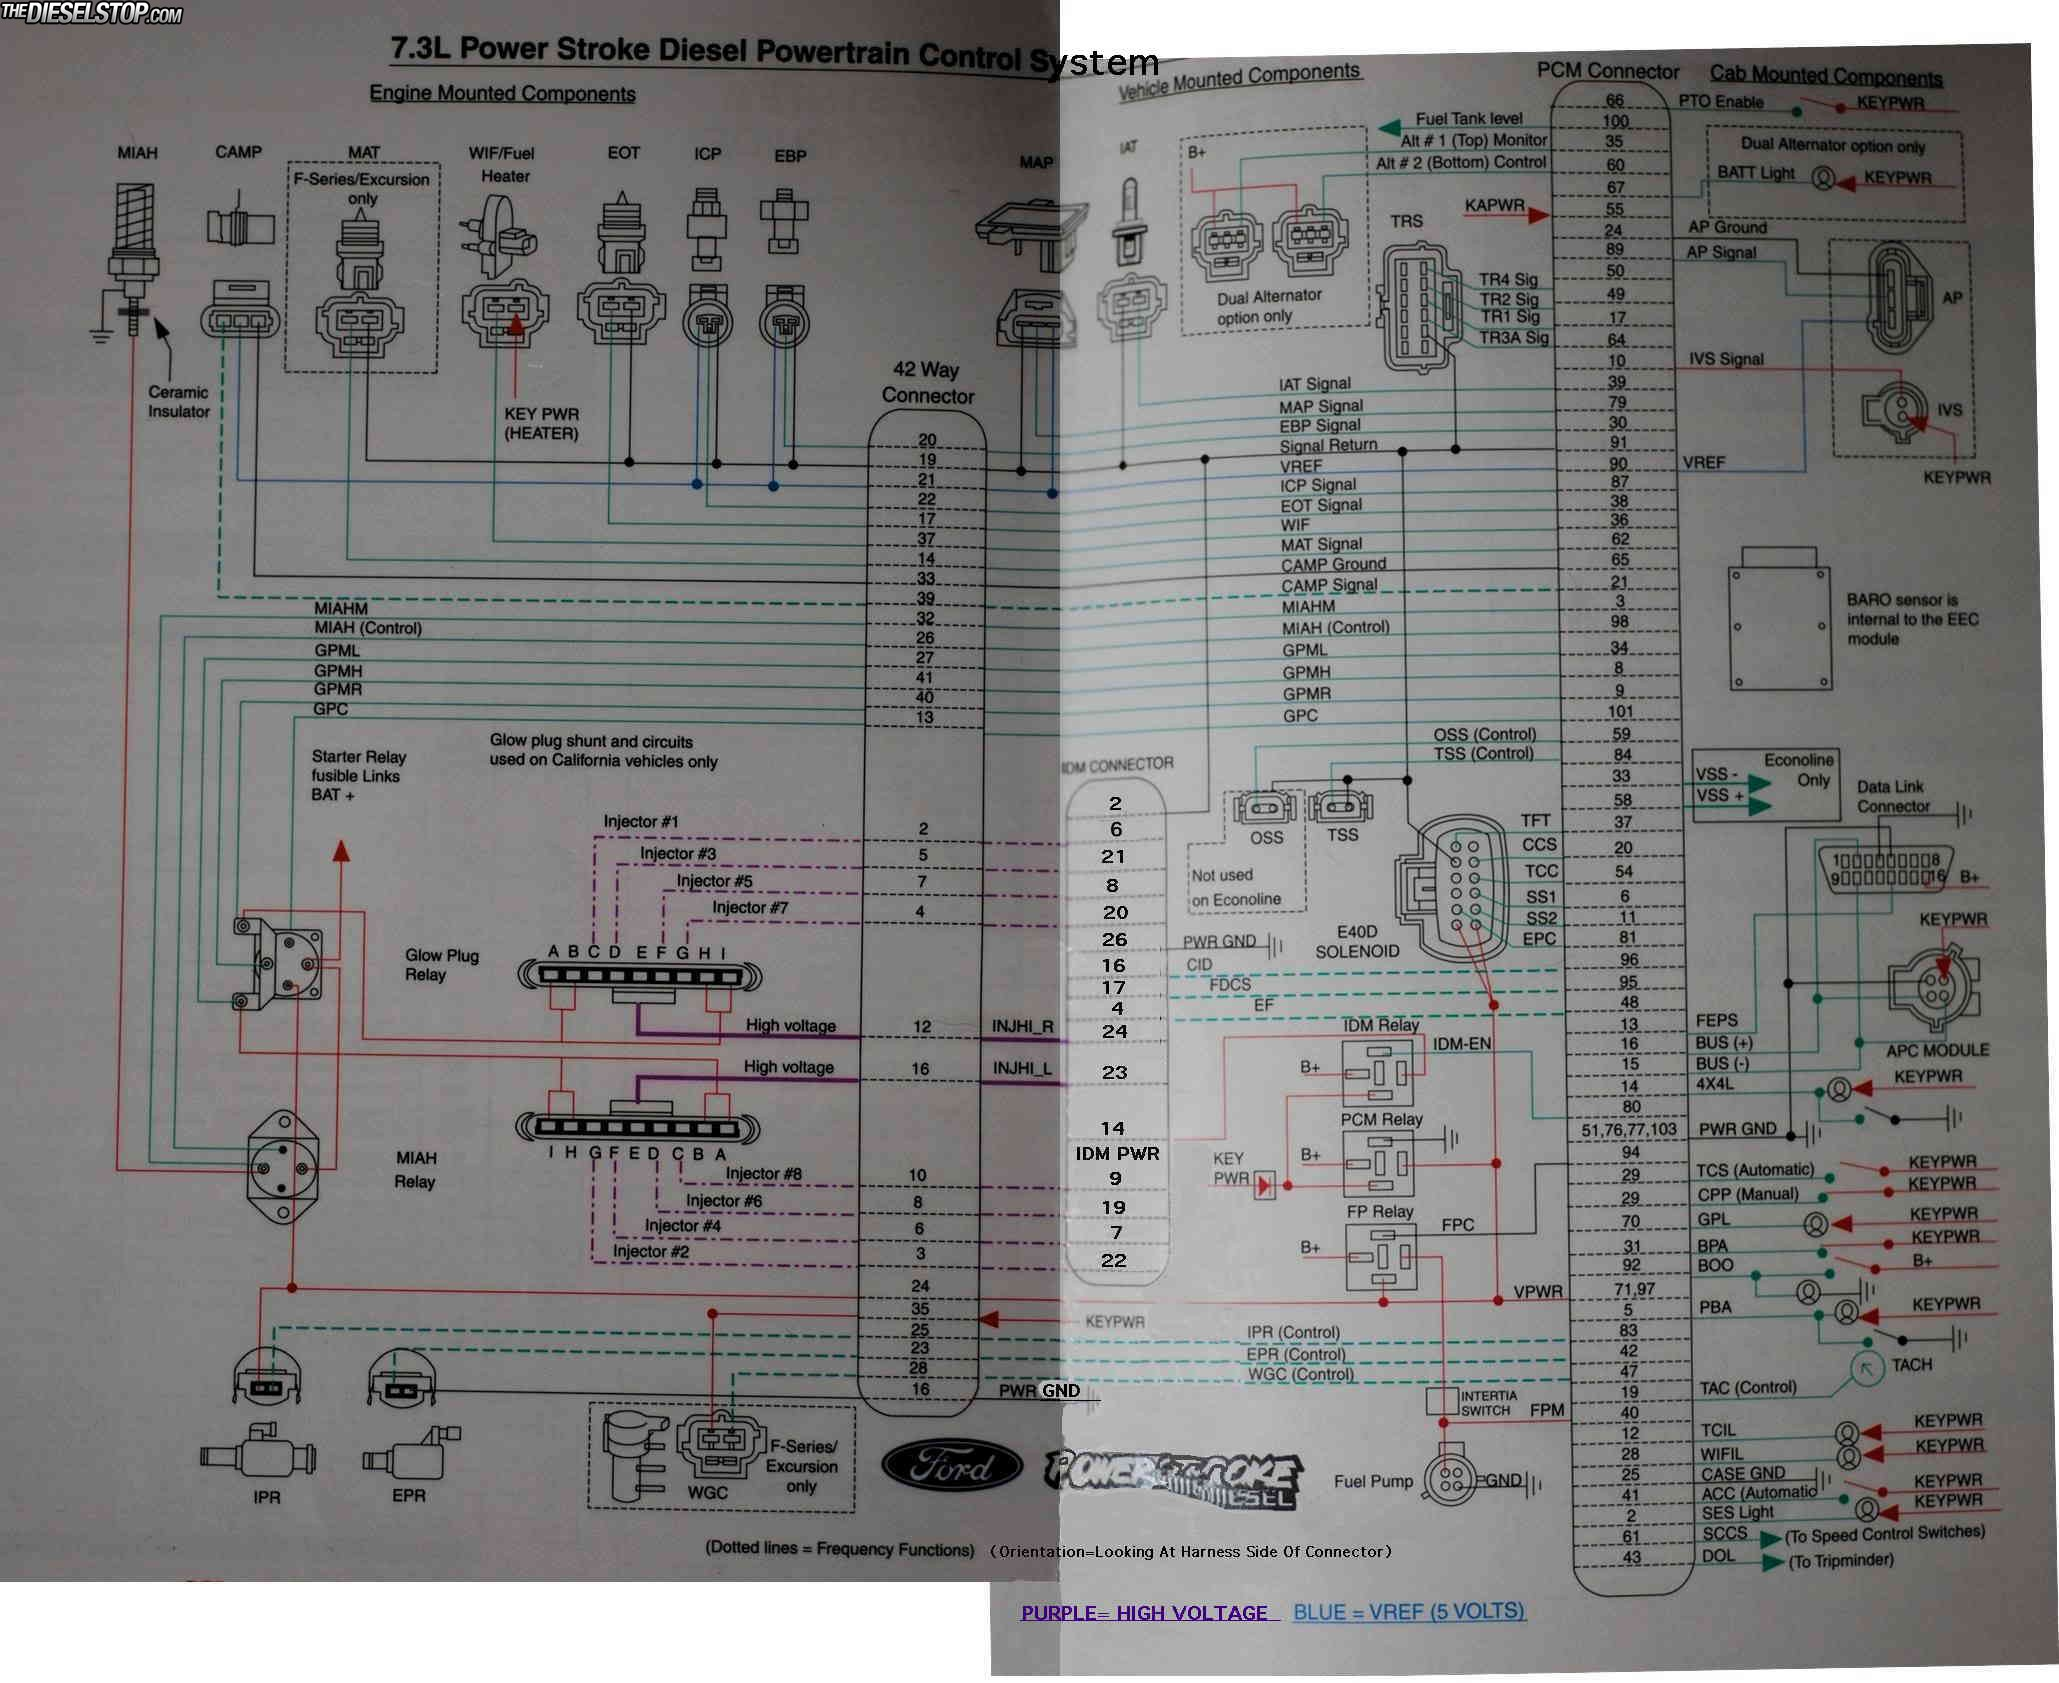 2000 Ford E 450 Wiring Diagram Opinions About E350 Electrical Auto Diagrams Ran My 03 Psd At The Dragstrip Tonight Page 2 Diesel Forum Thedieselstop Com Ignition 99 Econoline